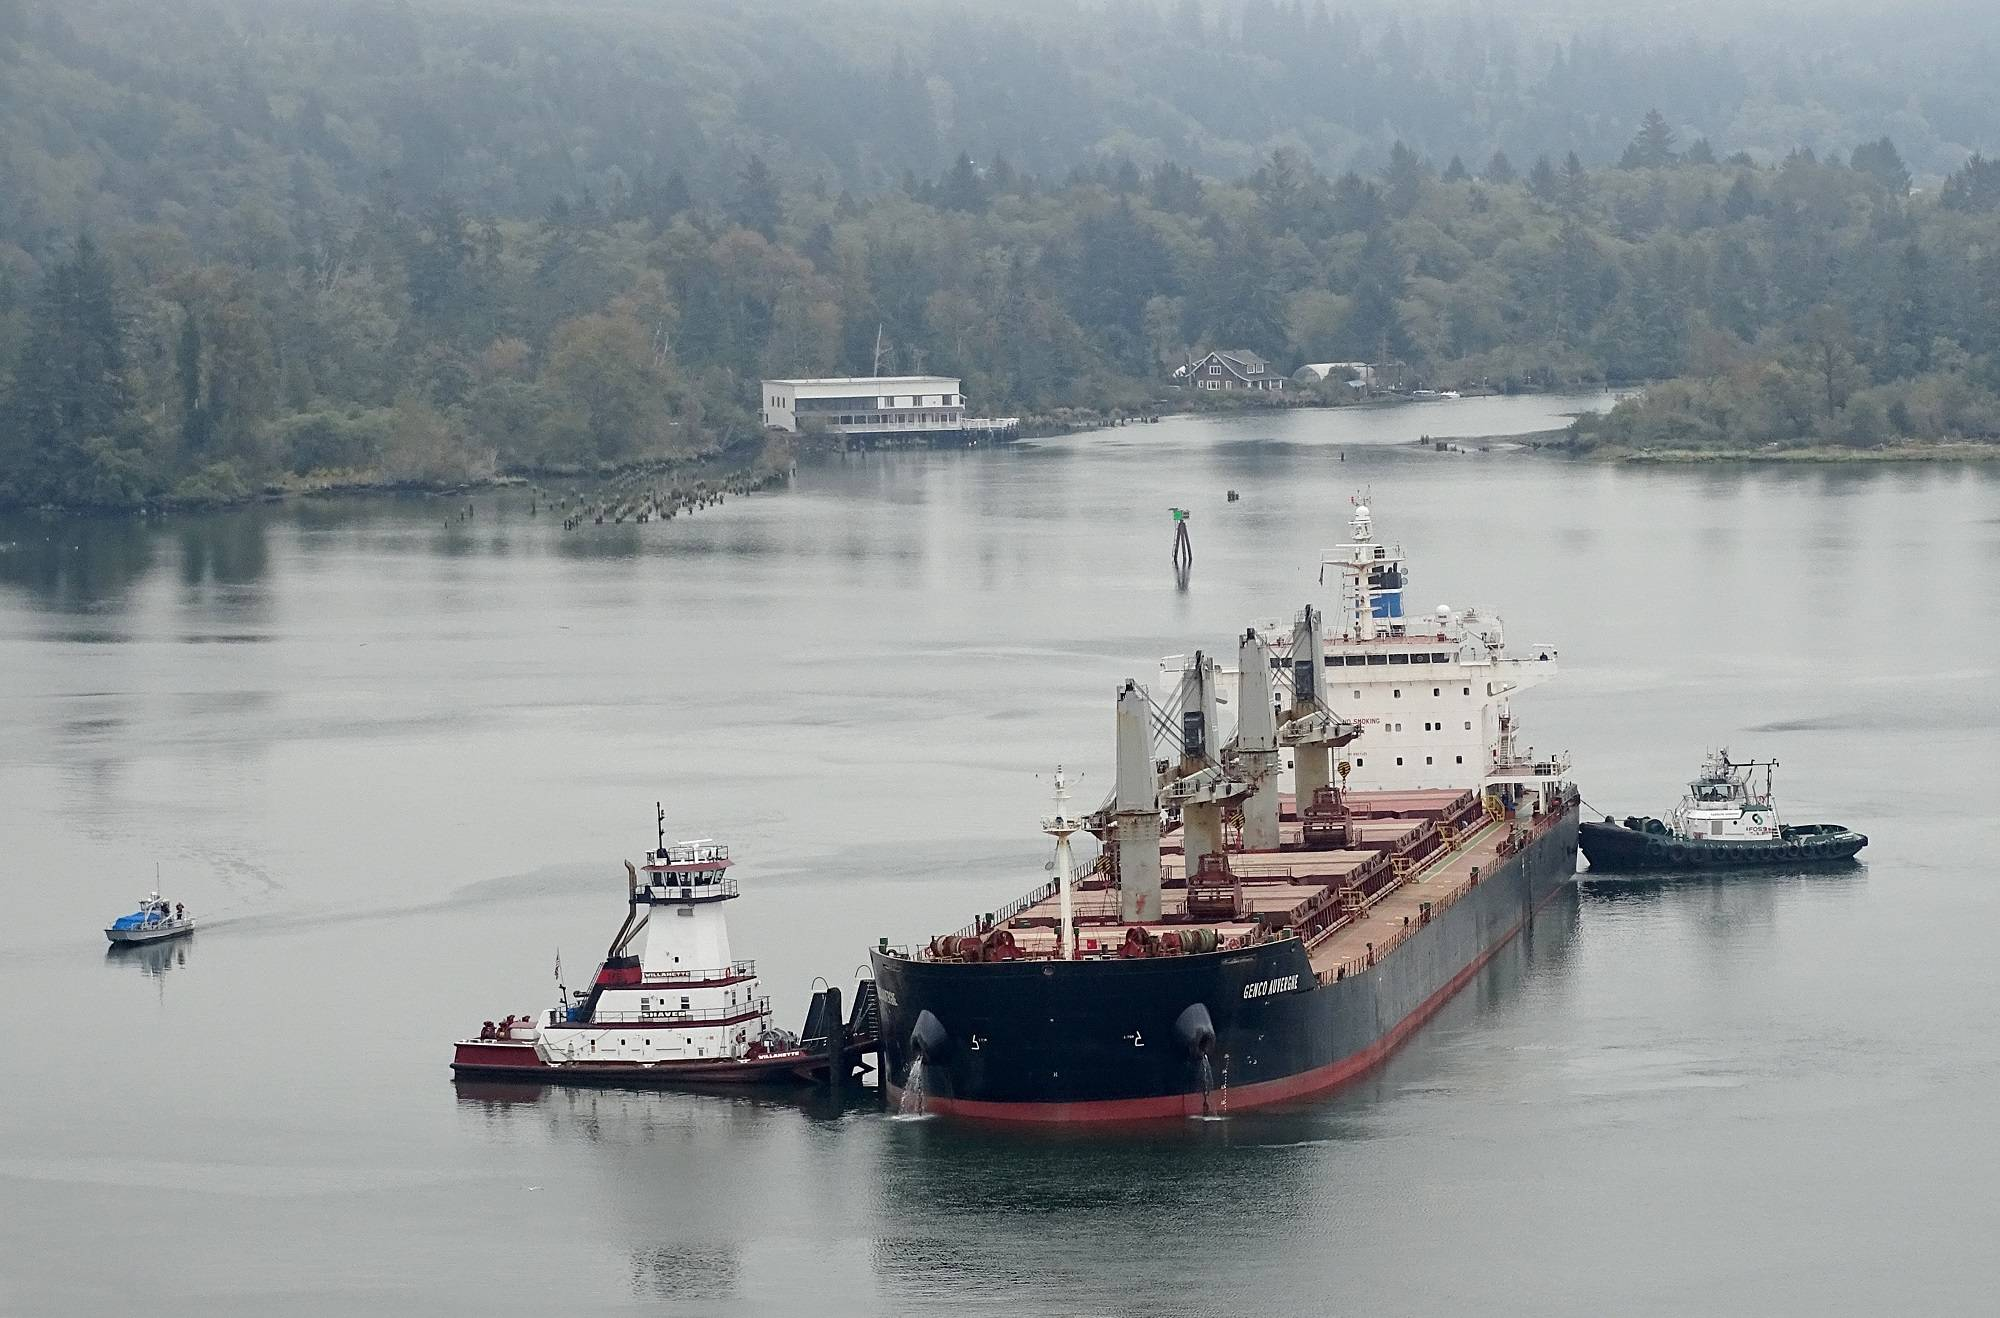 Bulk carrier grounds after engine failure in the Columbia River